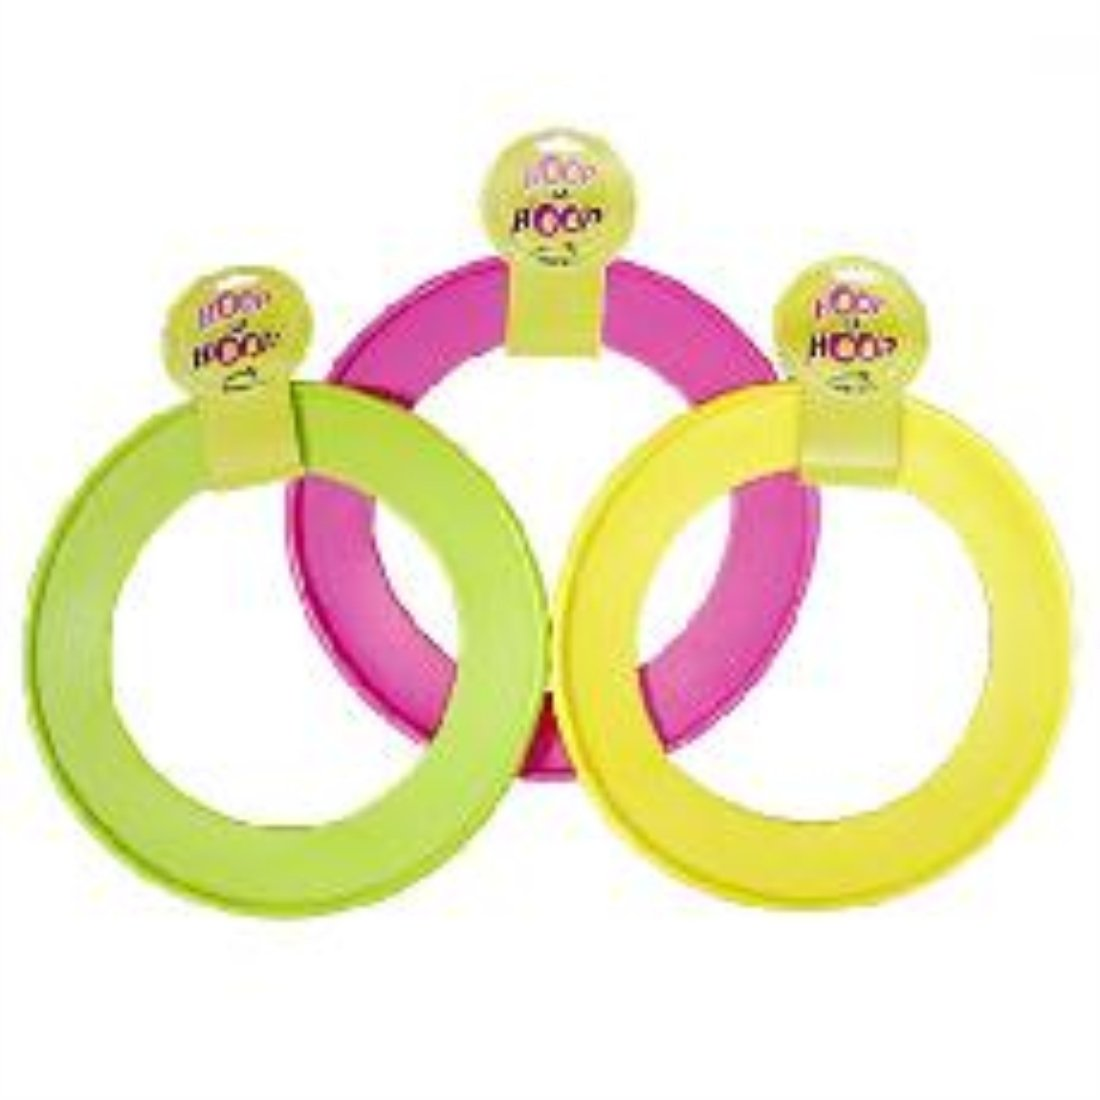 (Happy Pet) Hoop La Hoop Dog Throw and Fetch Toy Small Happy Pet Products Ltd 12598